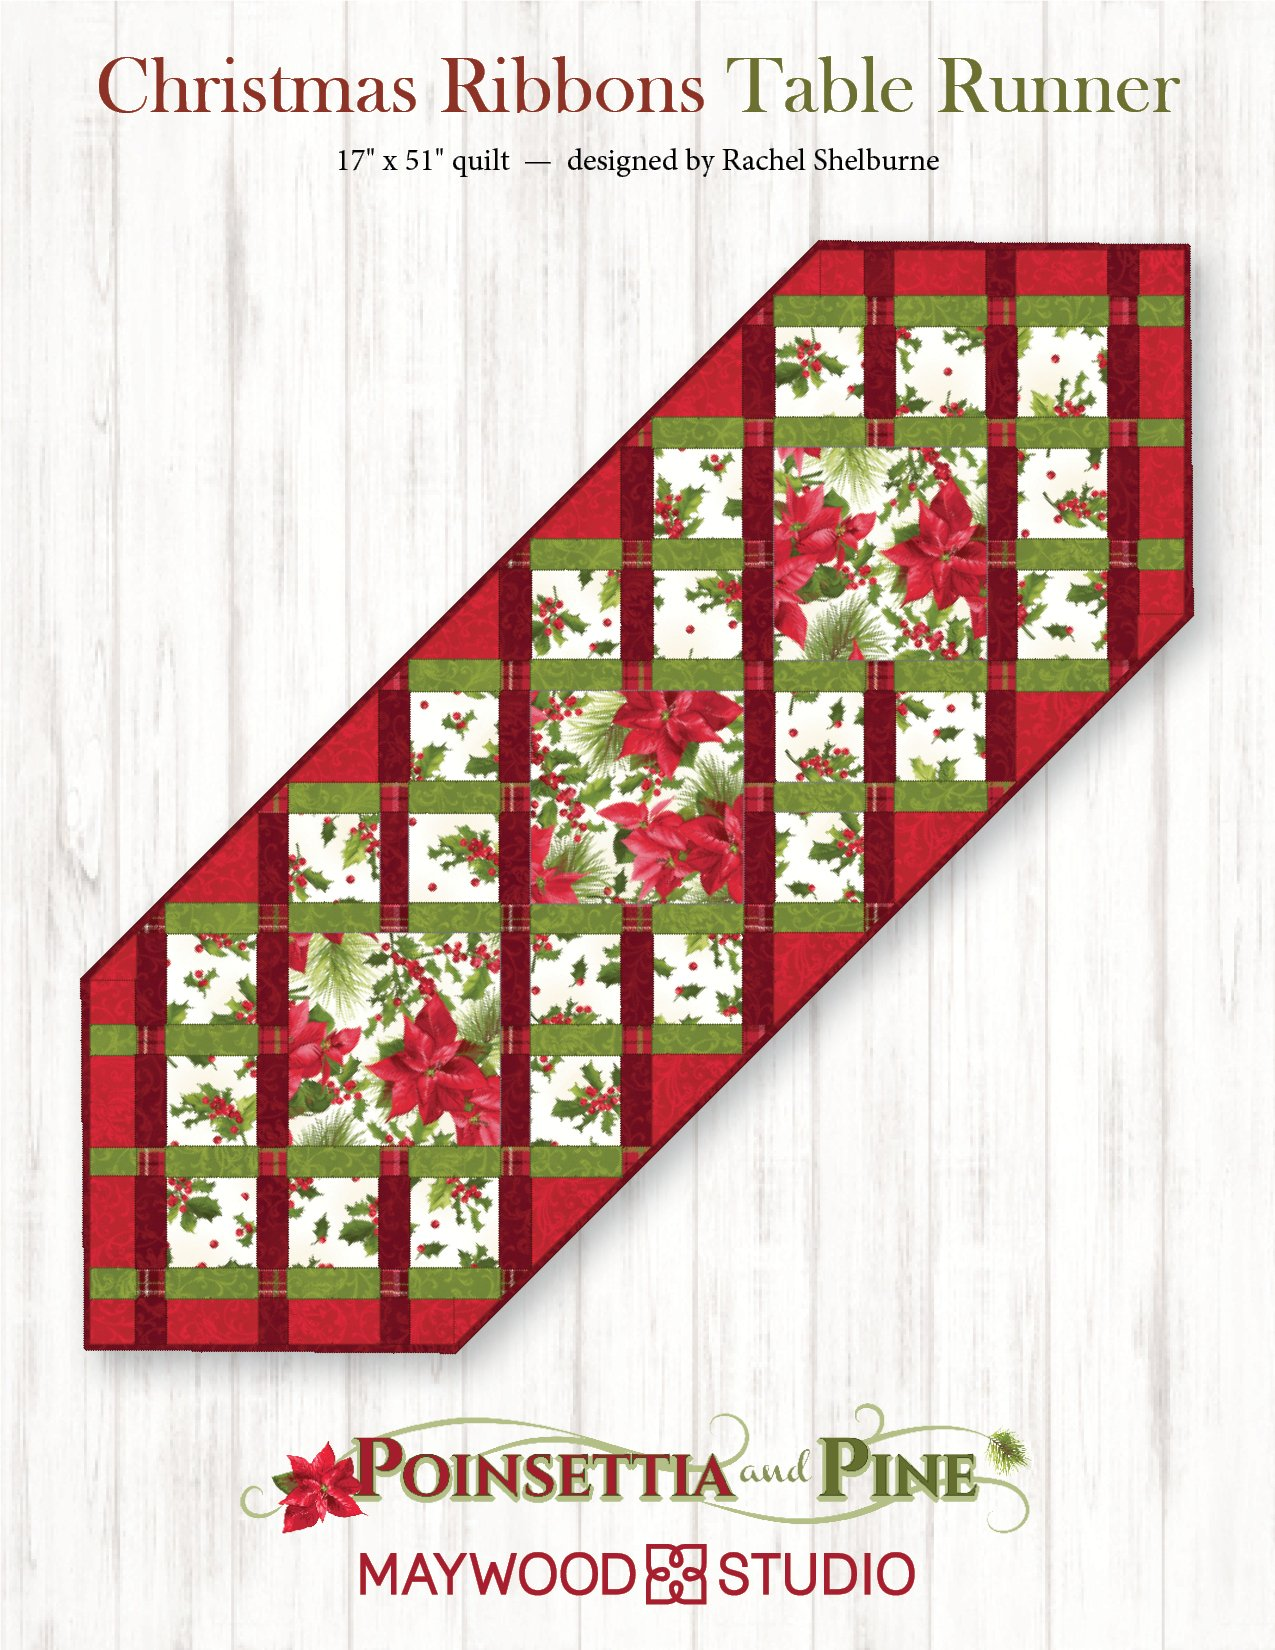 """Christmas Ribbons Table Runner"" Free Pattern designed by Rachel Shelburne from Maywood Studio"